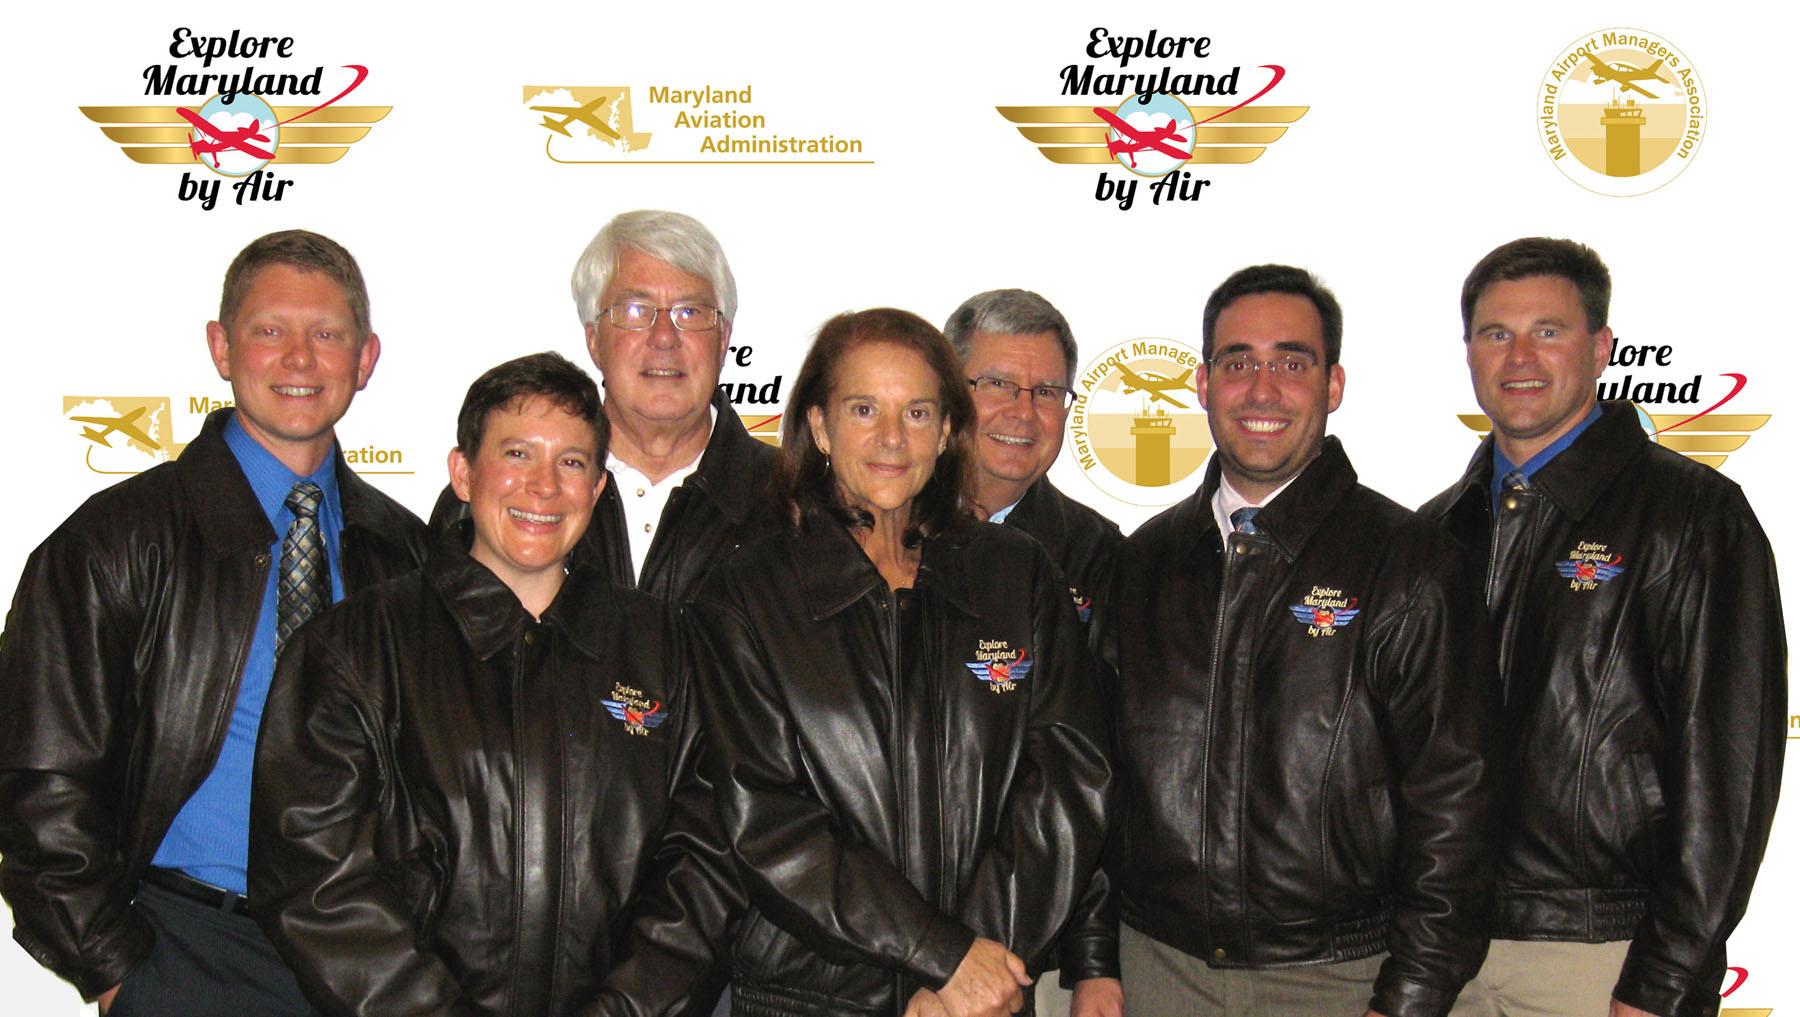 Explore Maryland by Air Awards